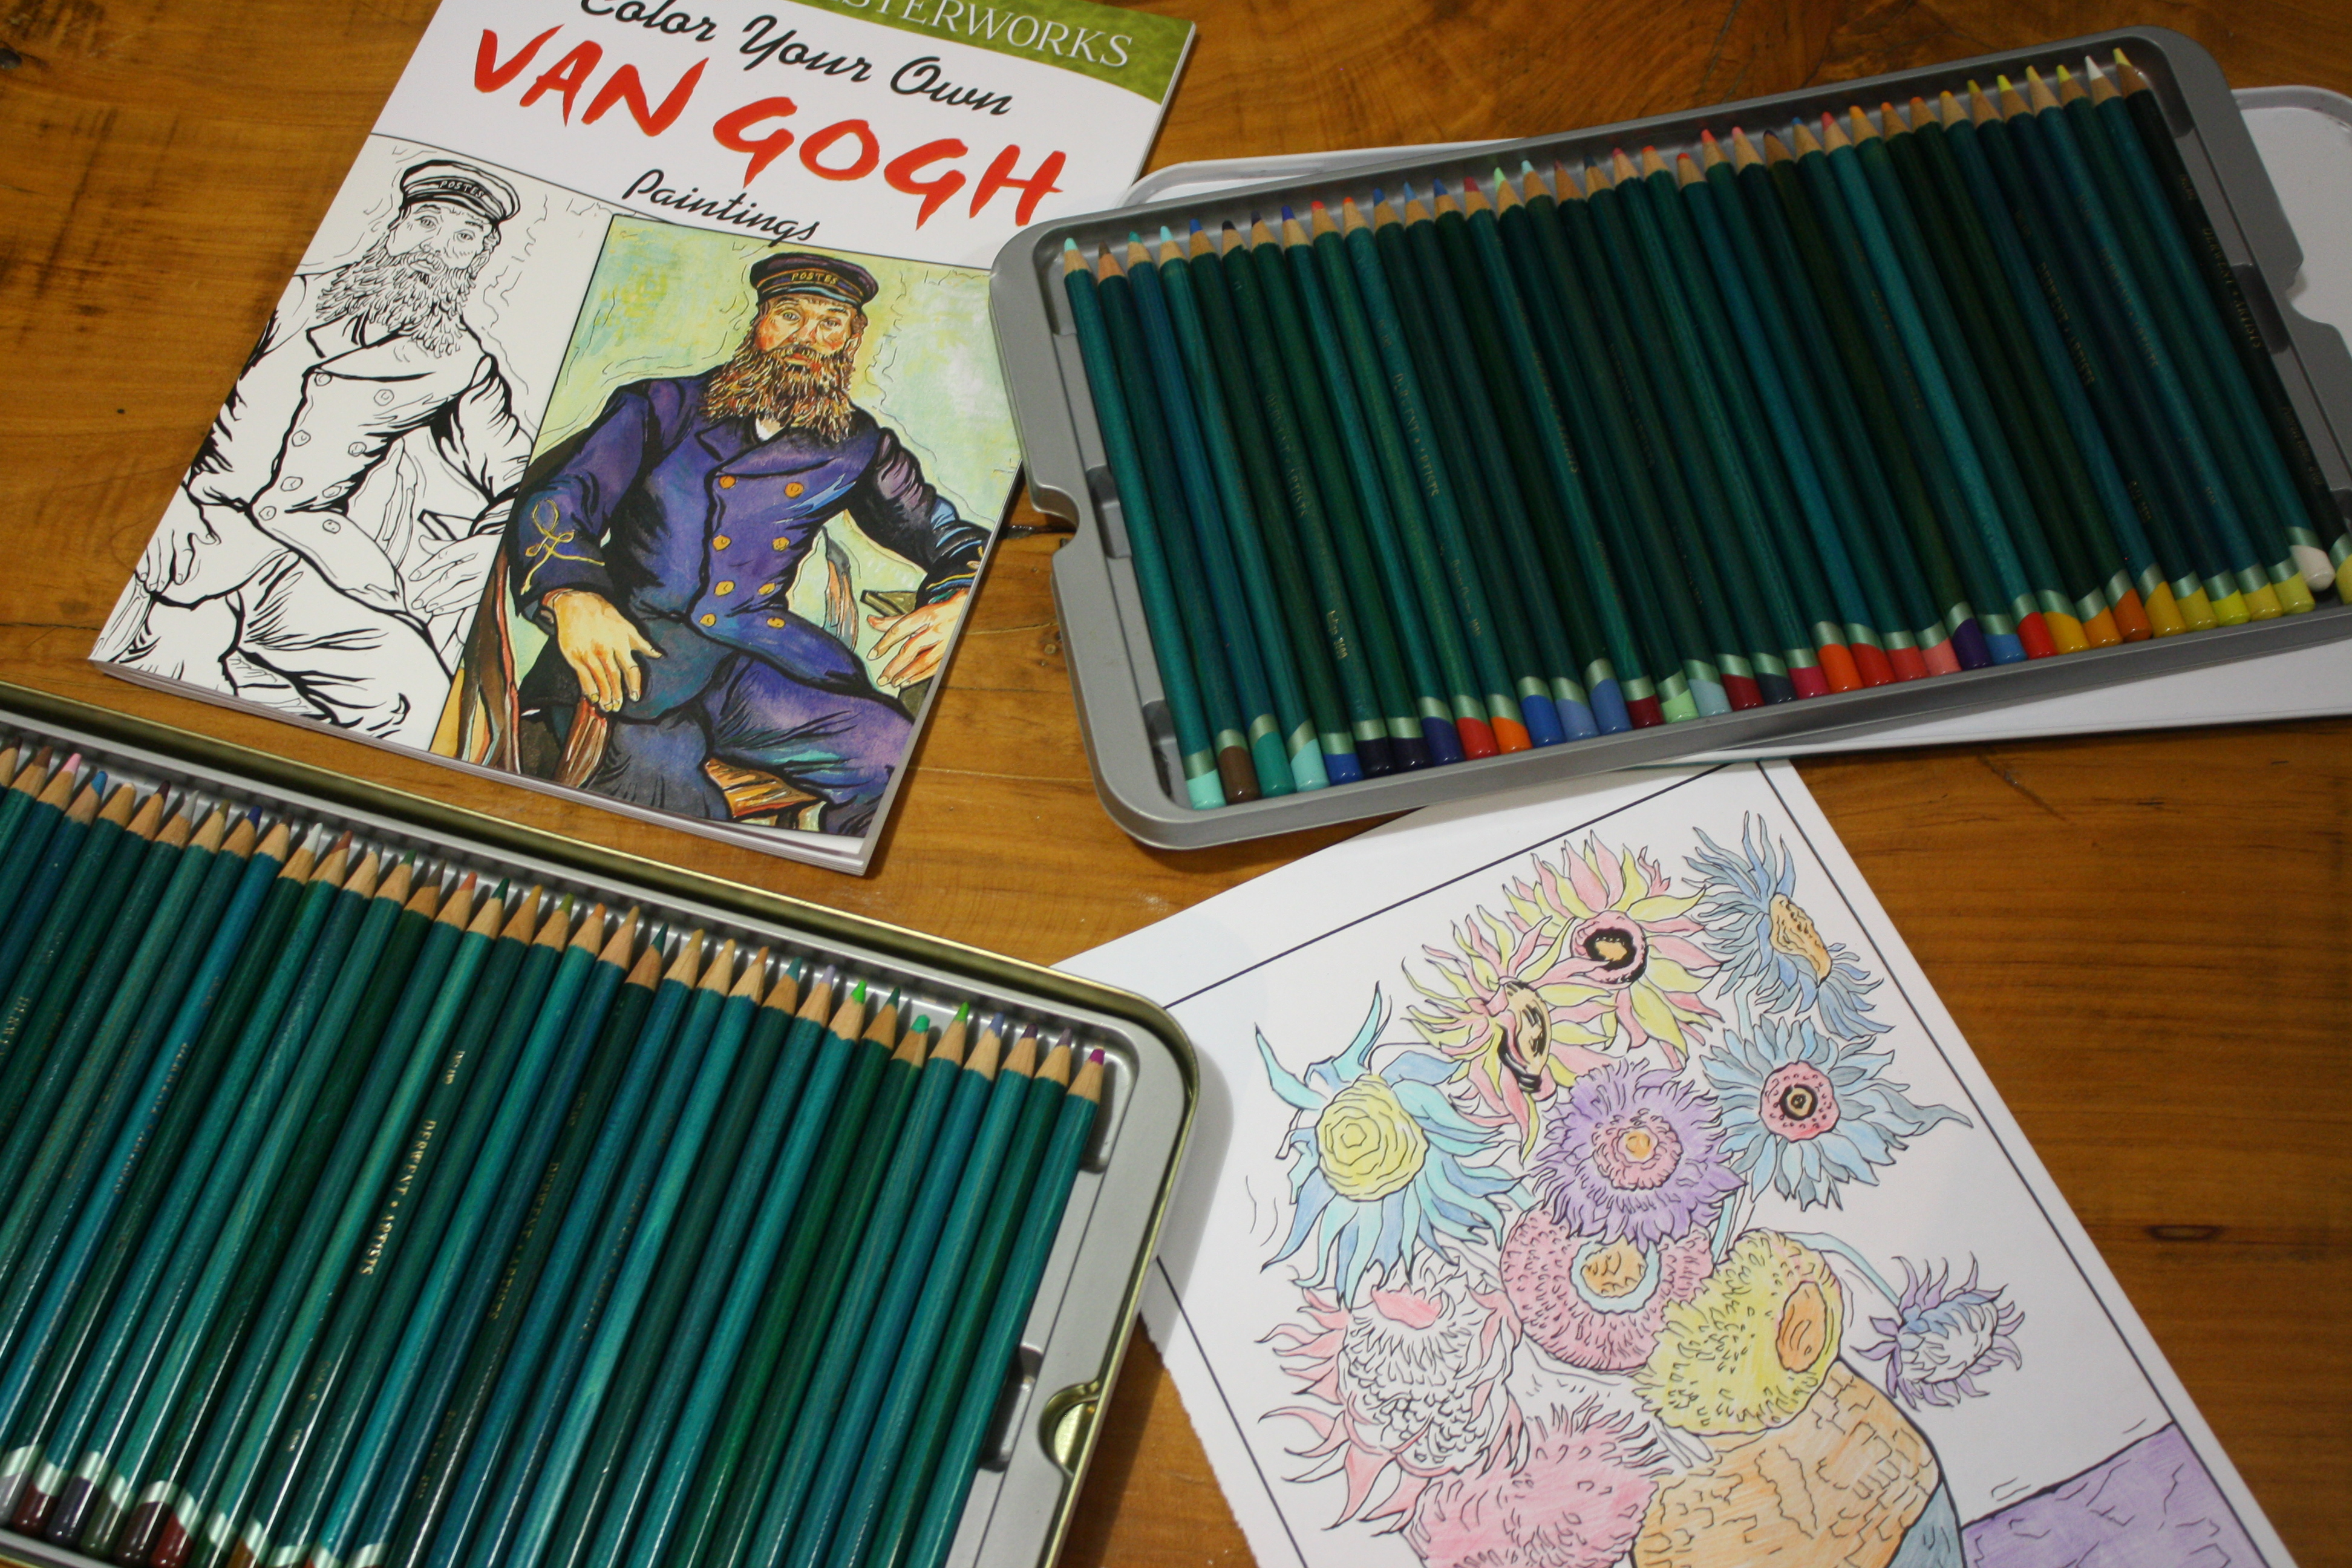 Th the secret garden coloring book uae - Do You Have Your Own Colouring Book